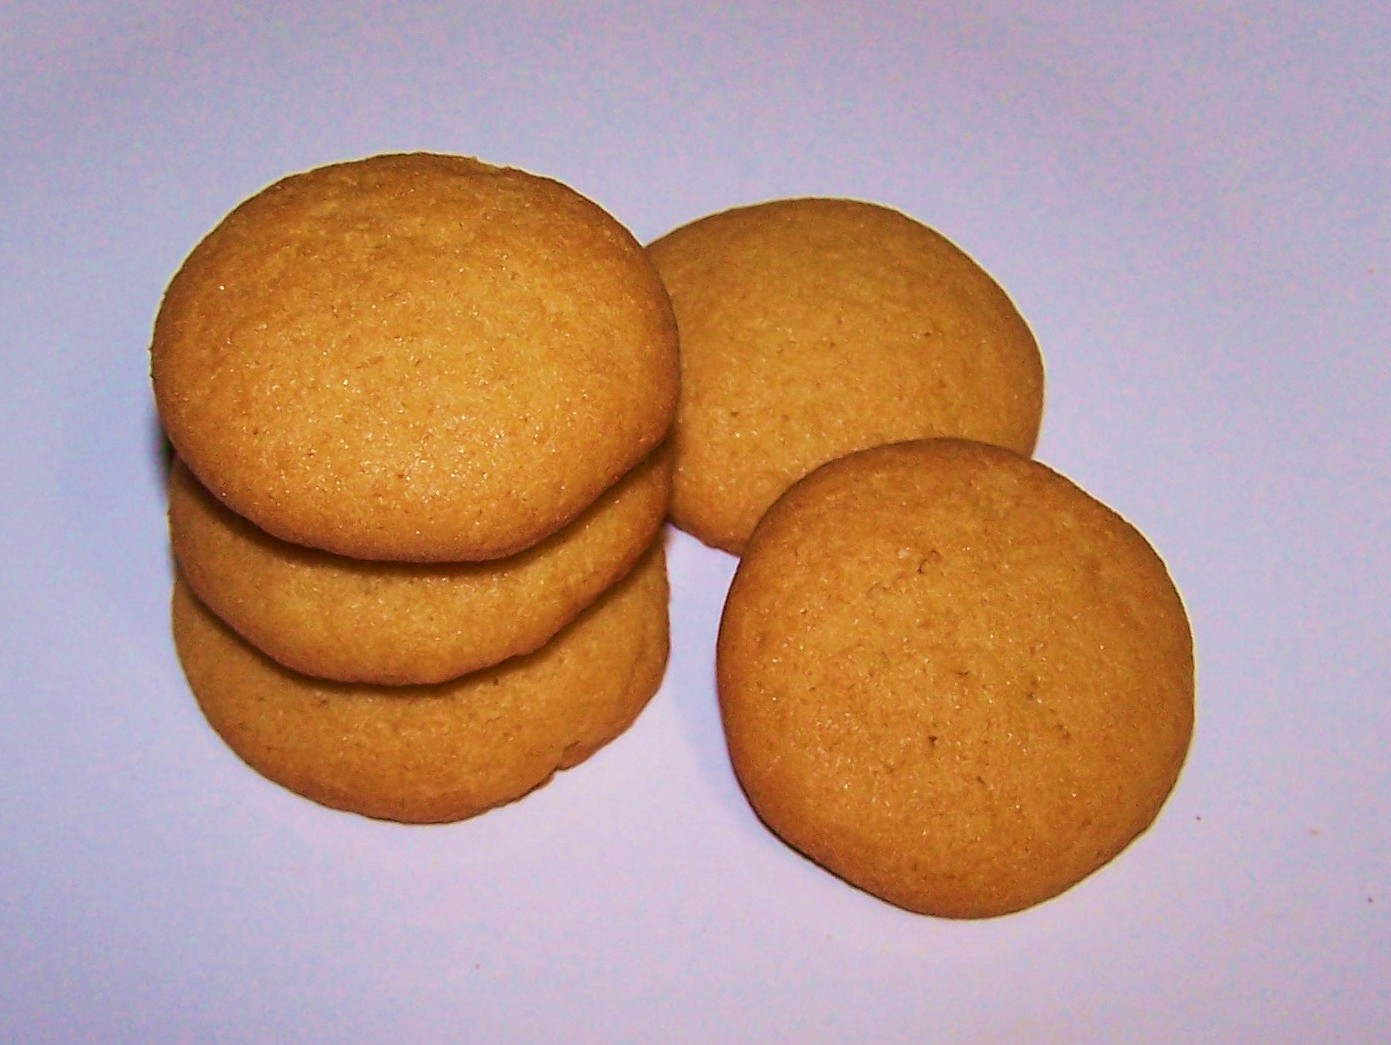 EZ Gluten Free: Gluten Free Vanilla Wafers and Banana Pudding